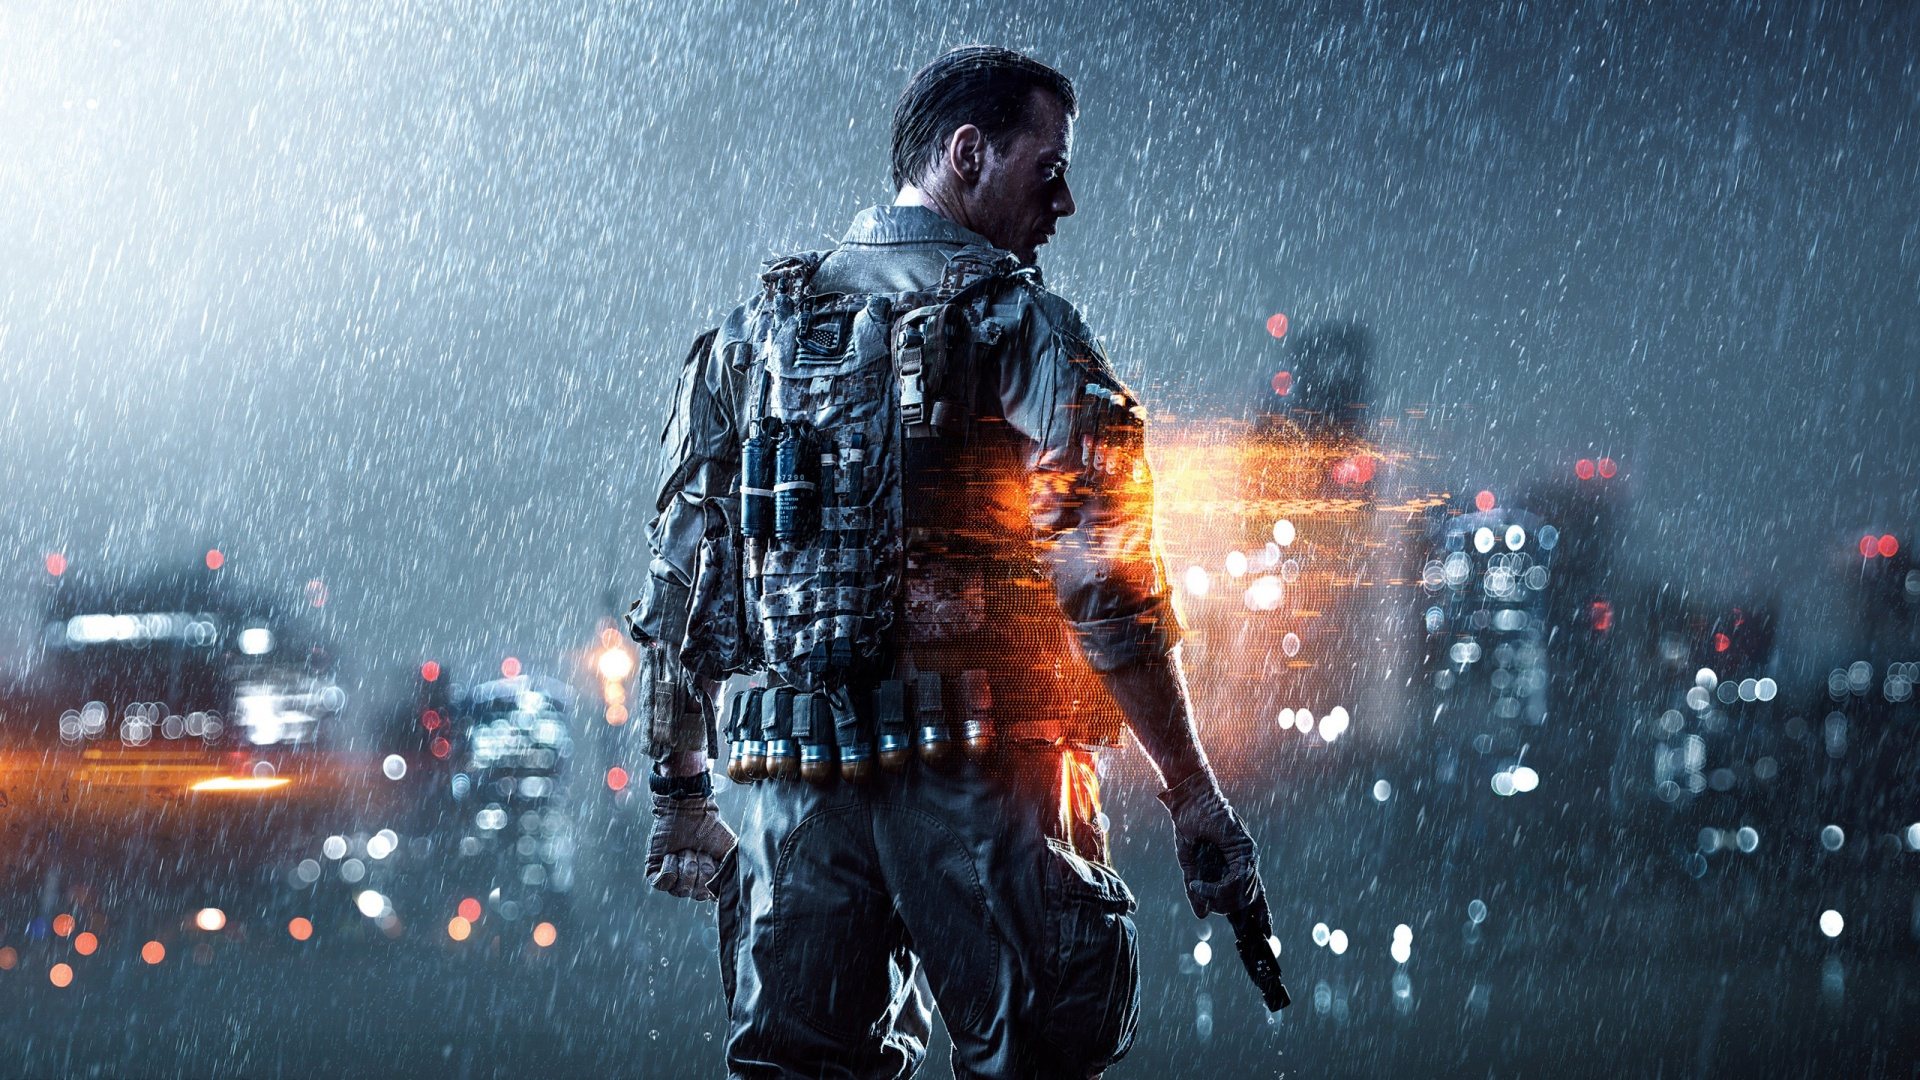 battlefield 4 full hd wallpaper and background image